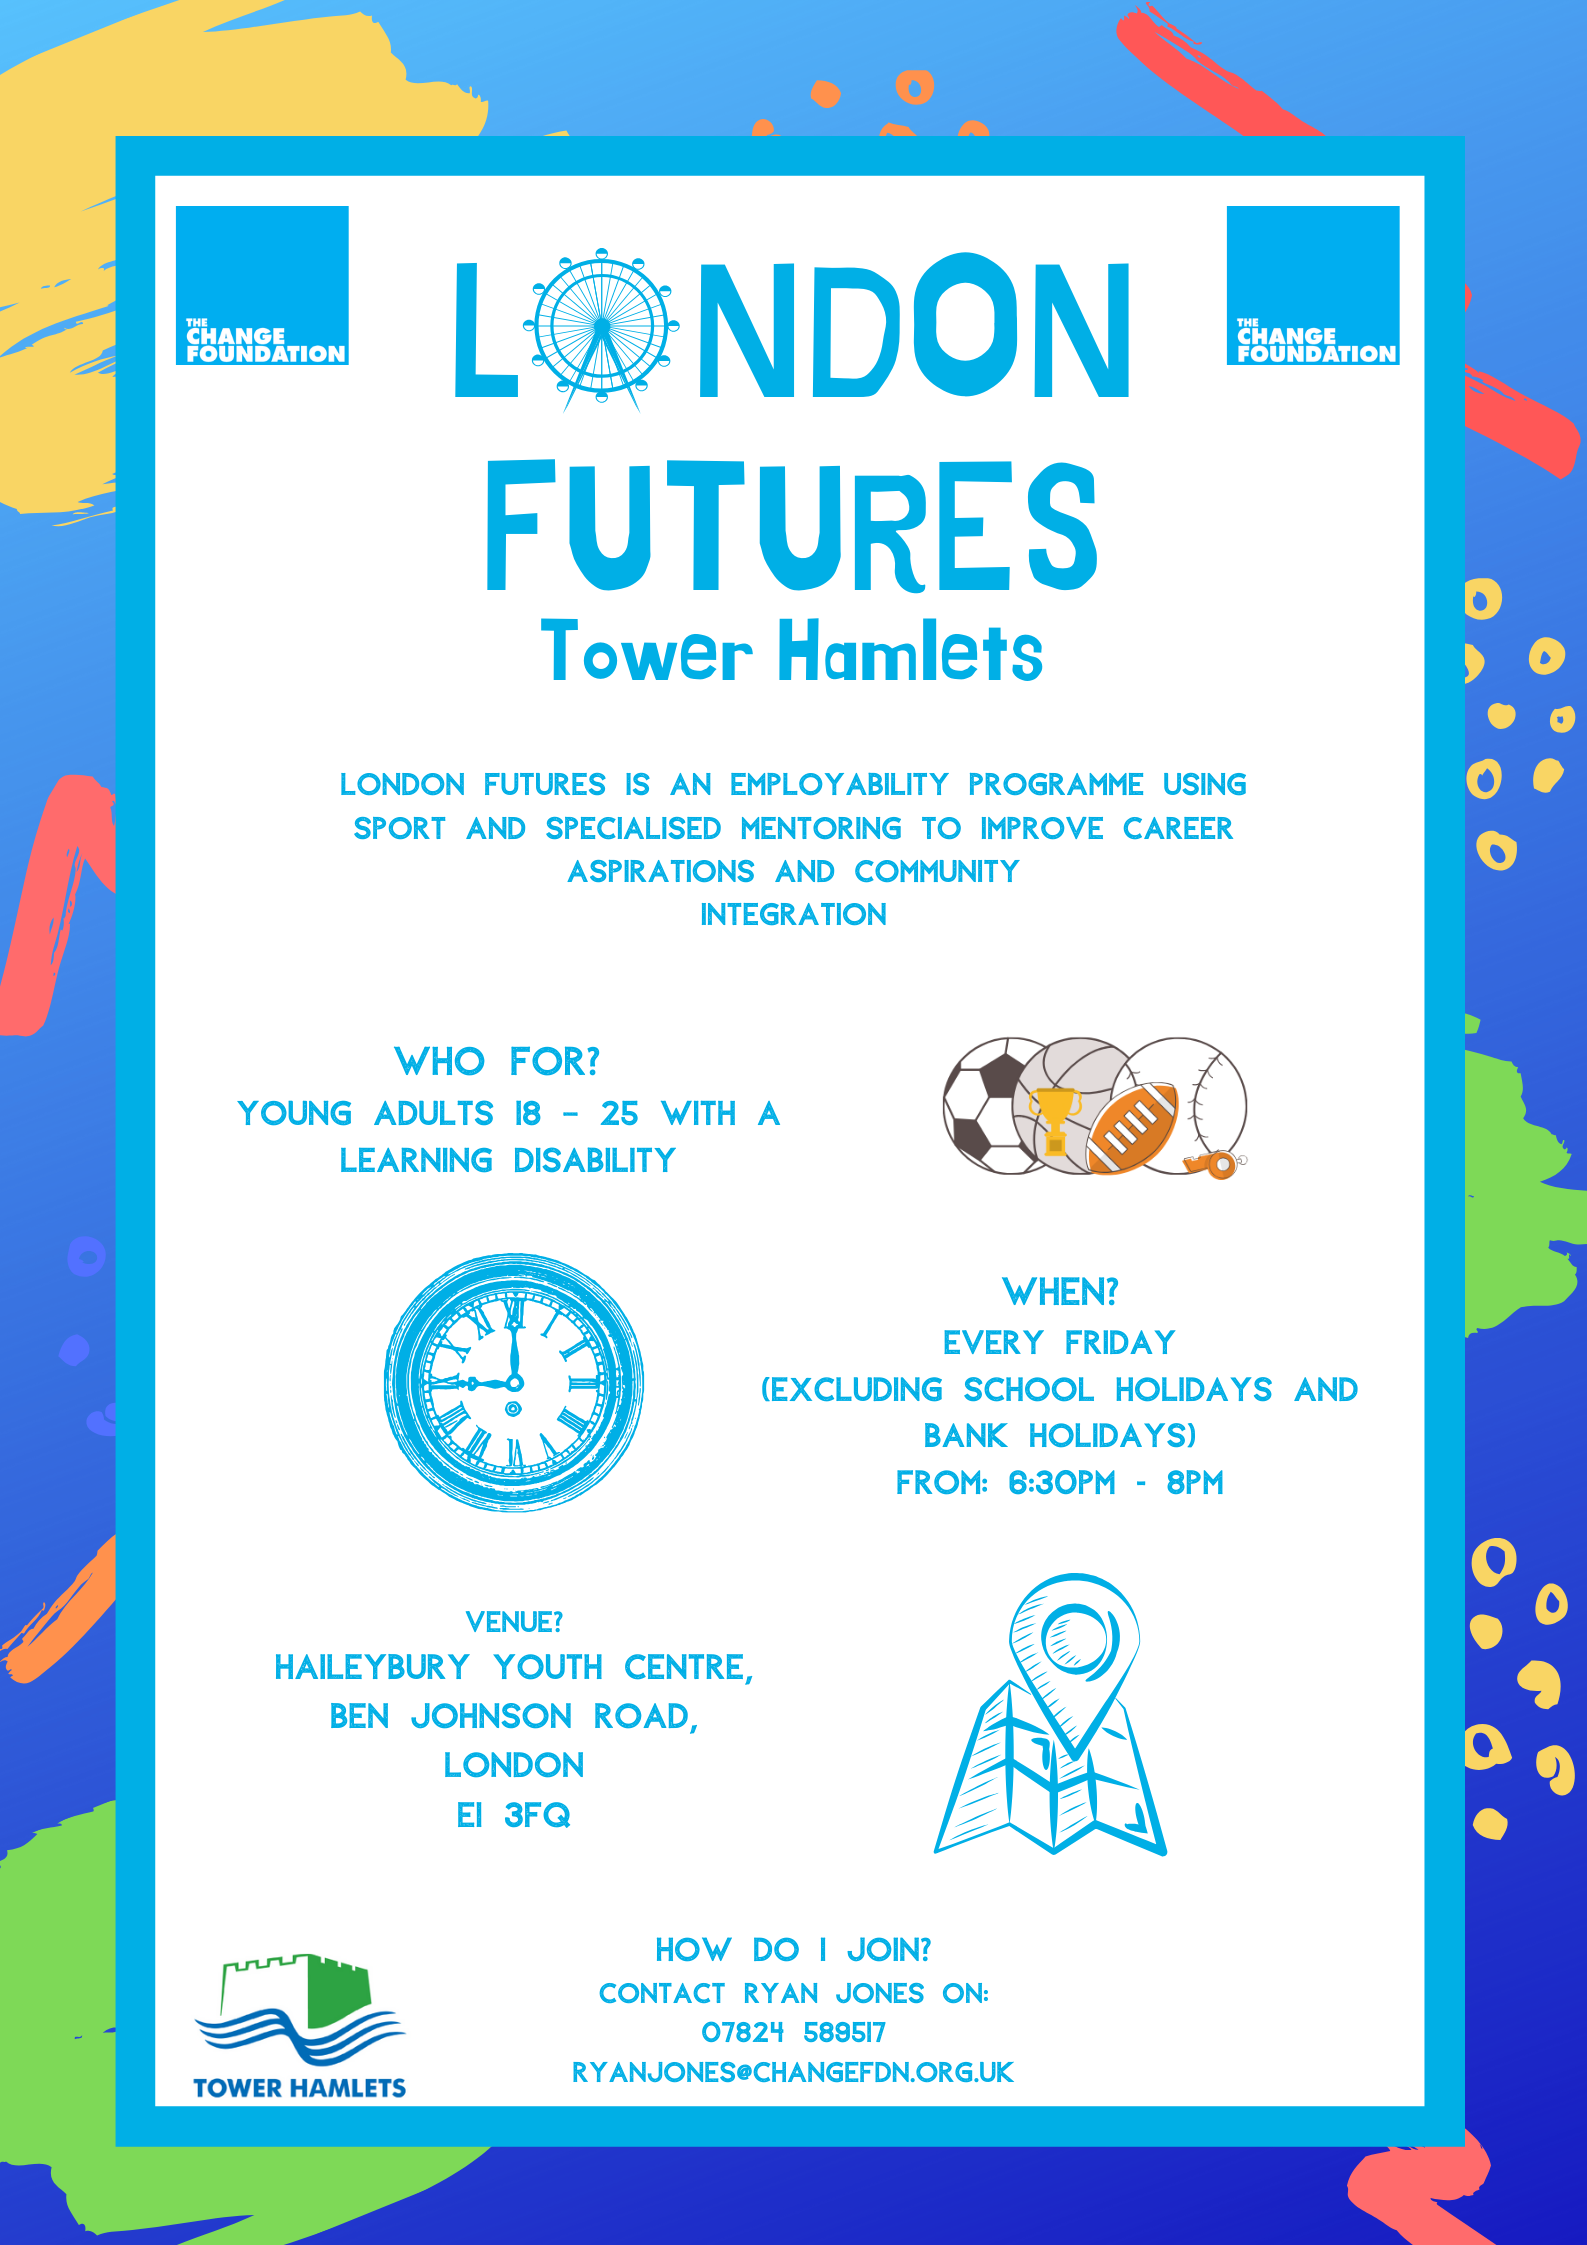 London Futures Tower Hamlets Flyer